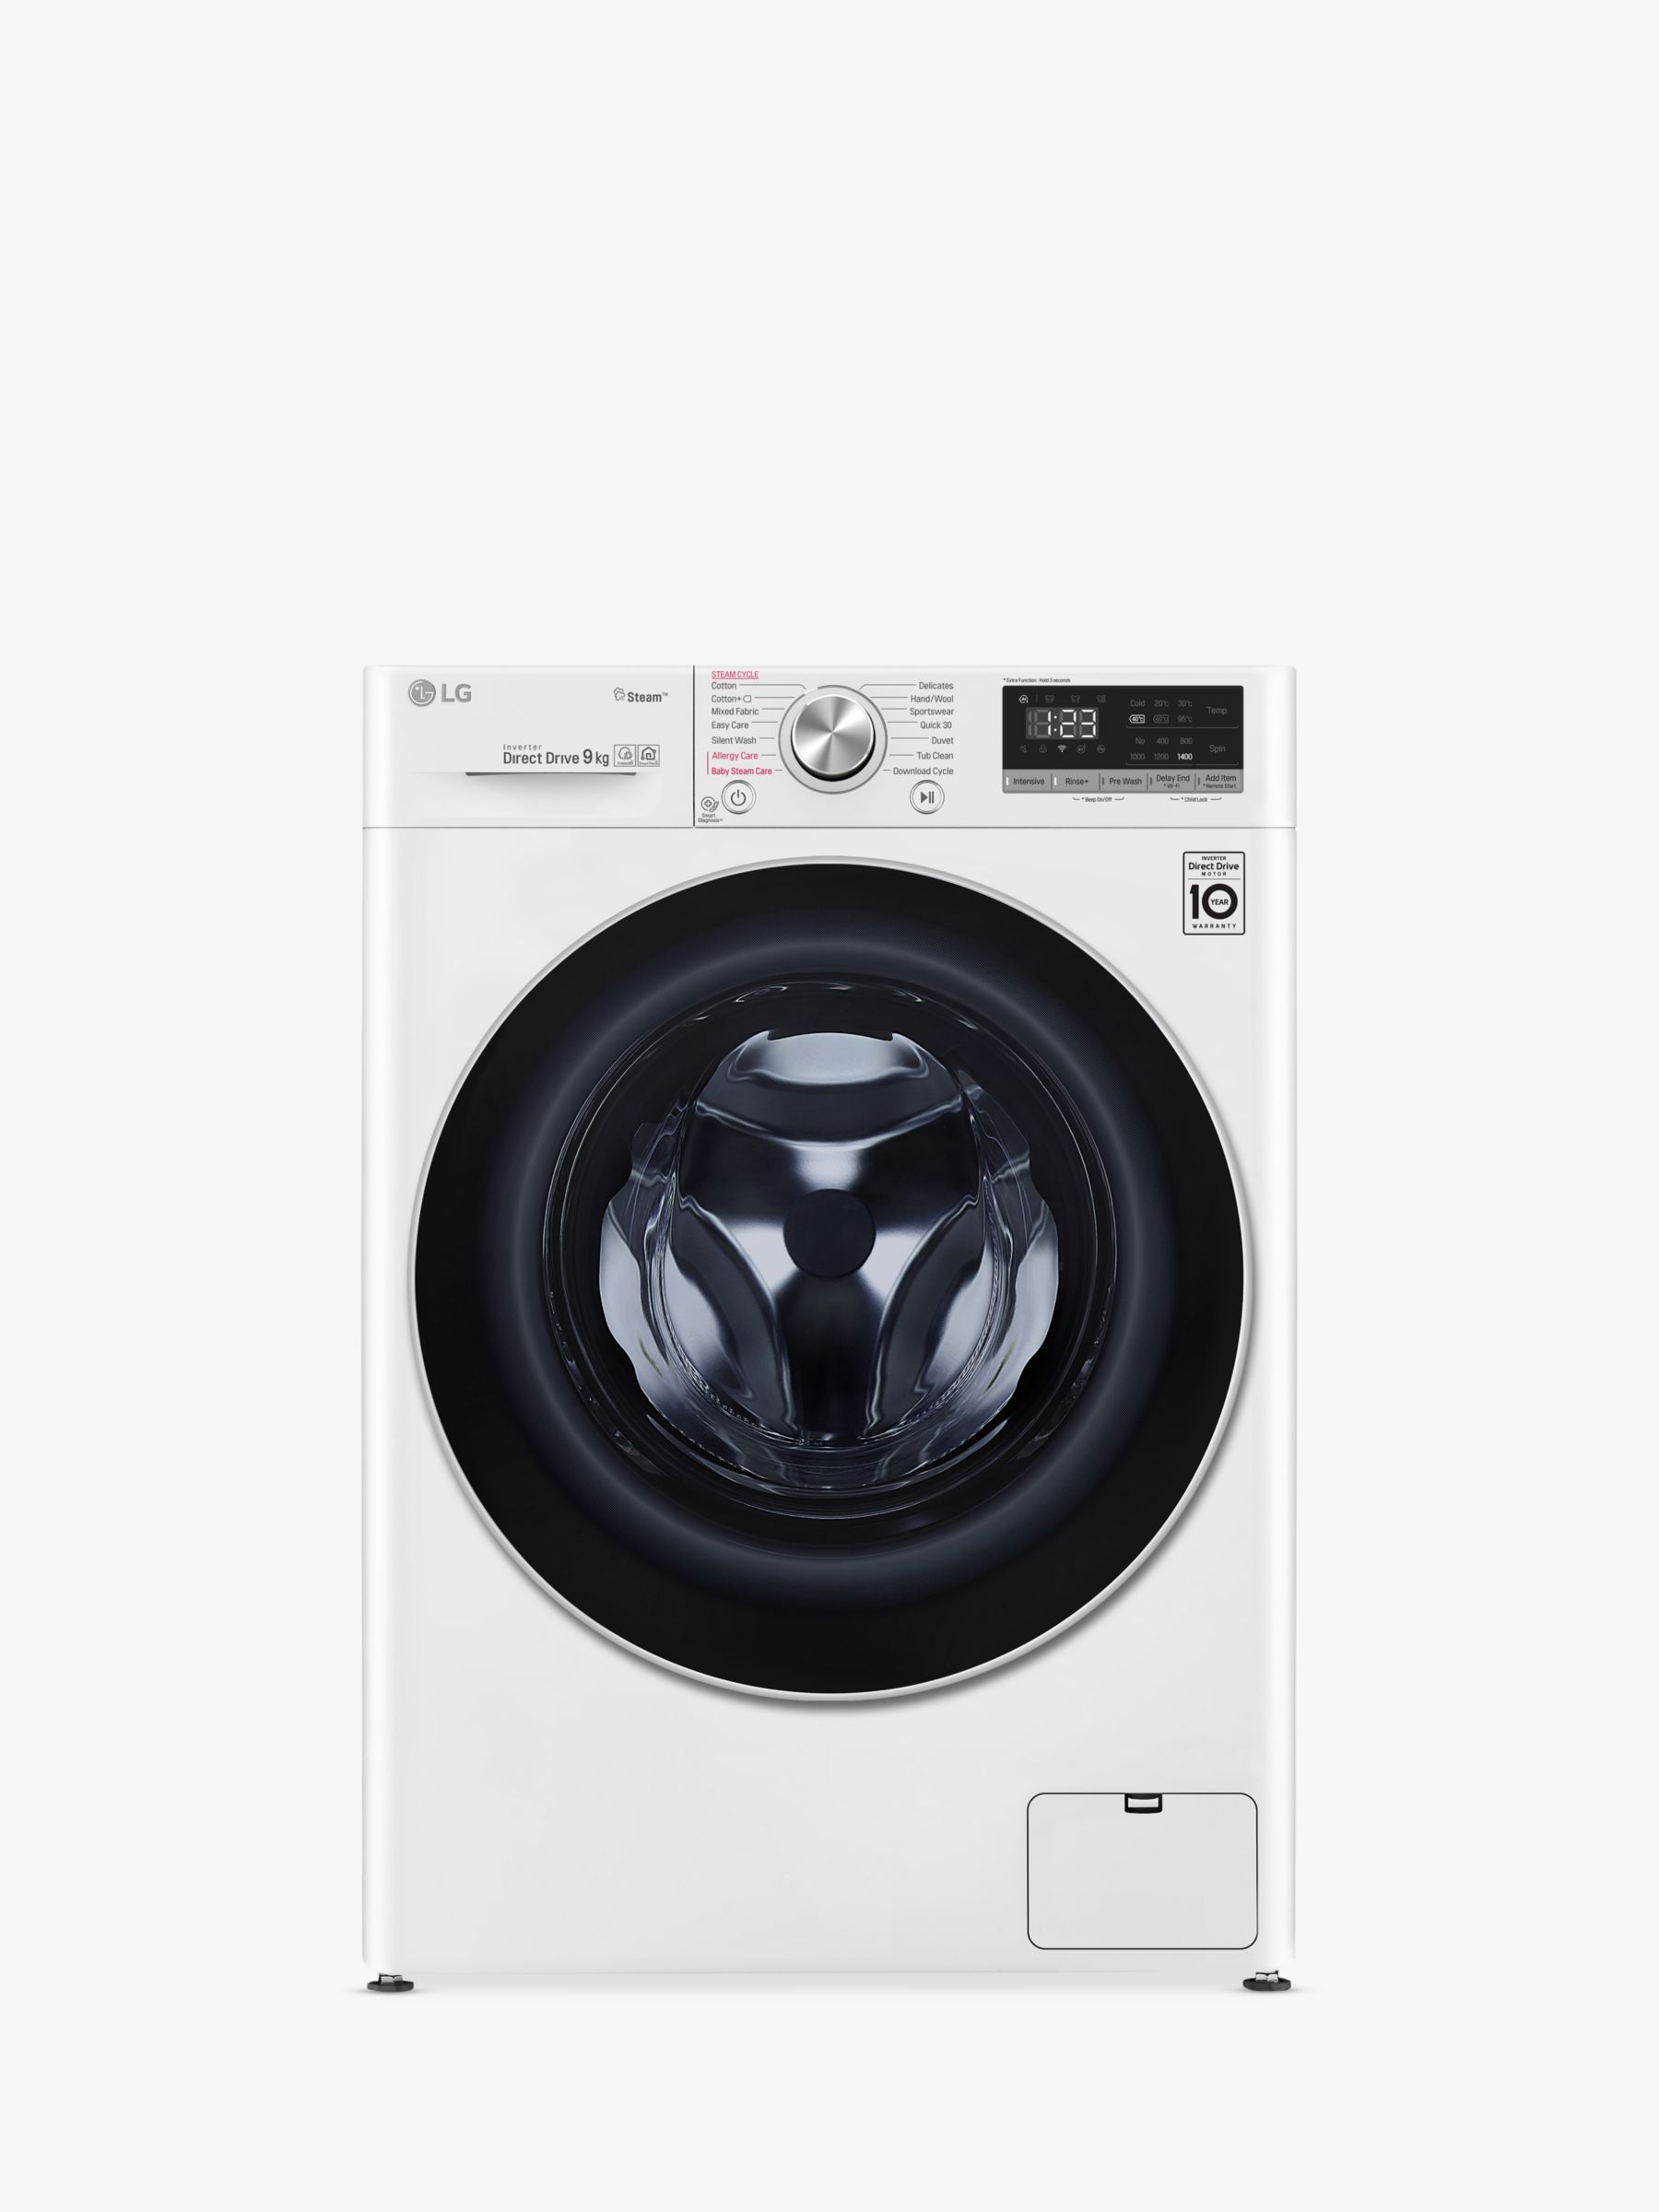 LG LG F4V509WS Freestanding Washing Machine, 9kg Load, A+++ Energy Rating, 1400rpm Spin, White